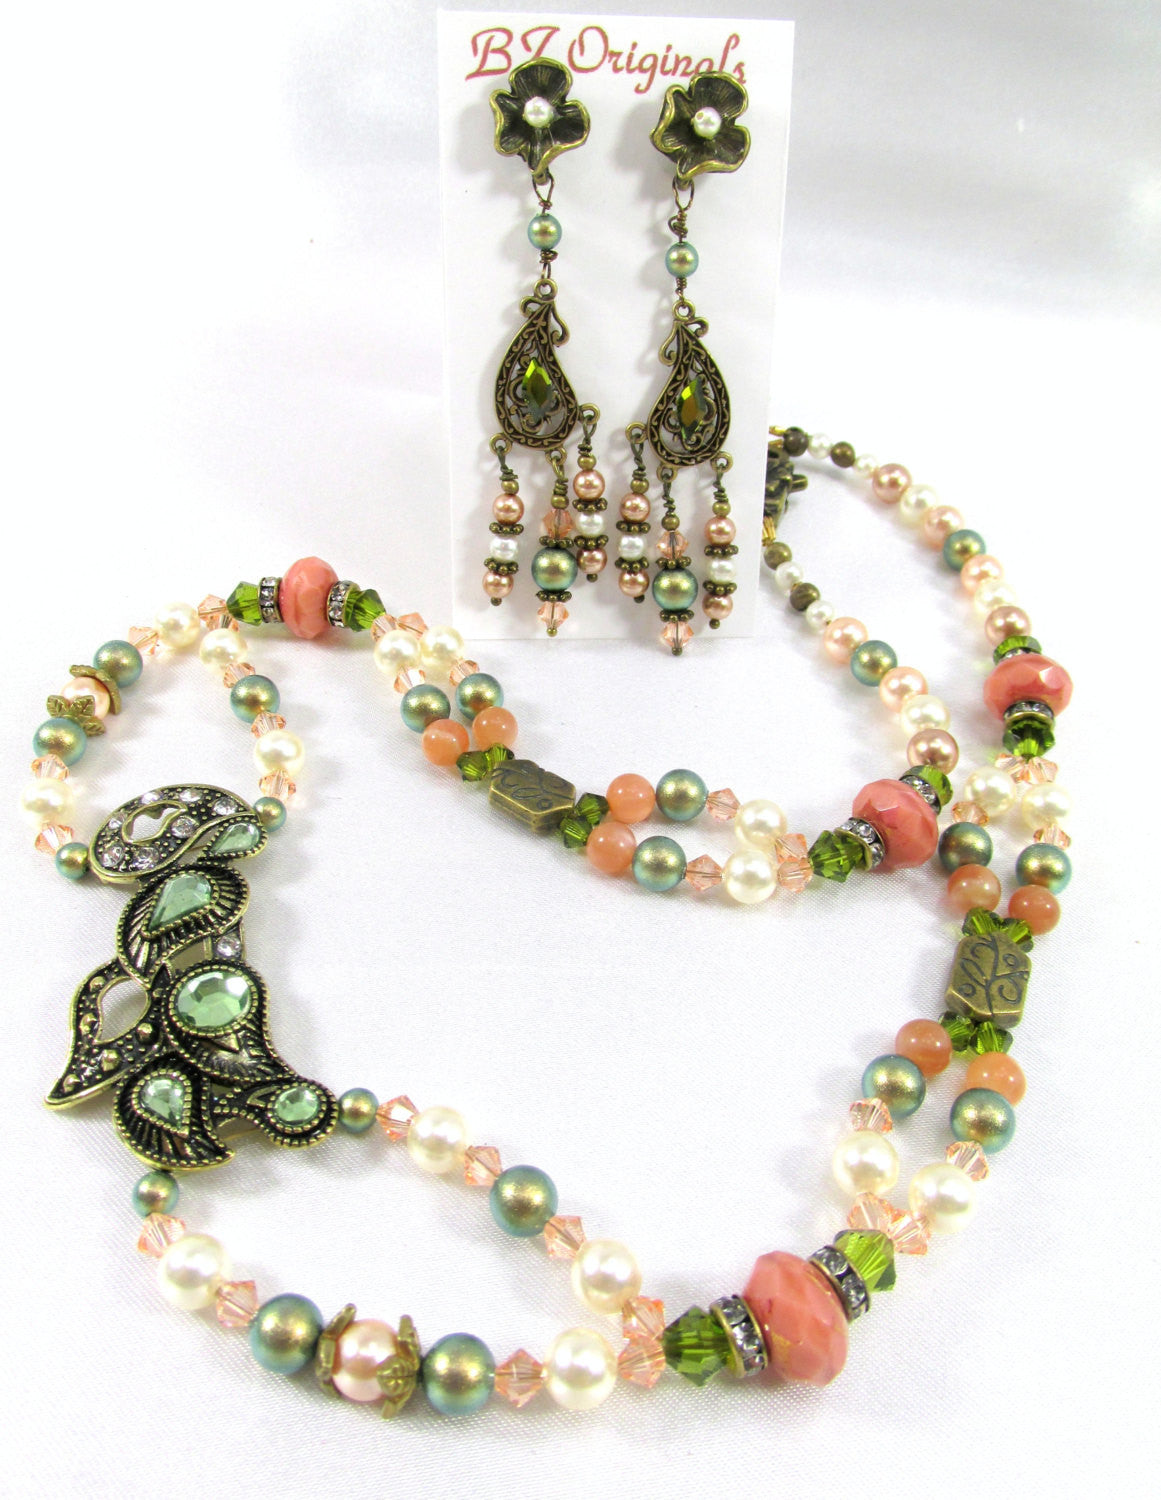 Vintage Style Antique Brass Necklace with Olive Green Crystals, Moonstone, Coral & Peach Swarovski Crystals - Odyssey Creations